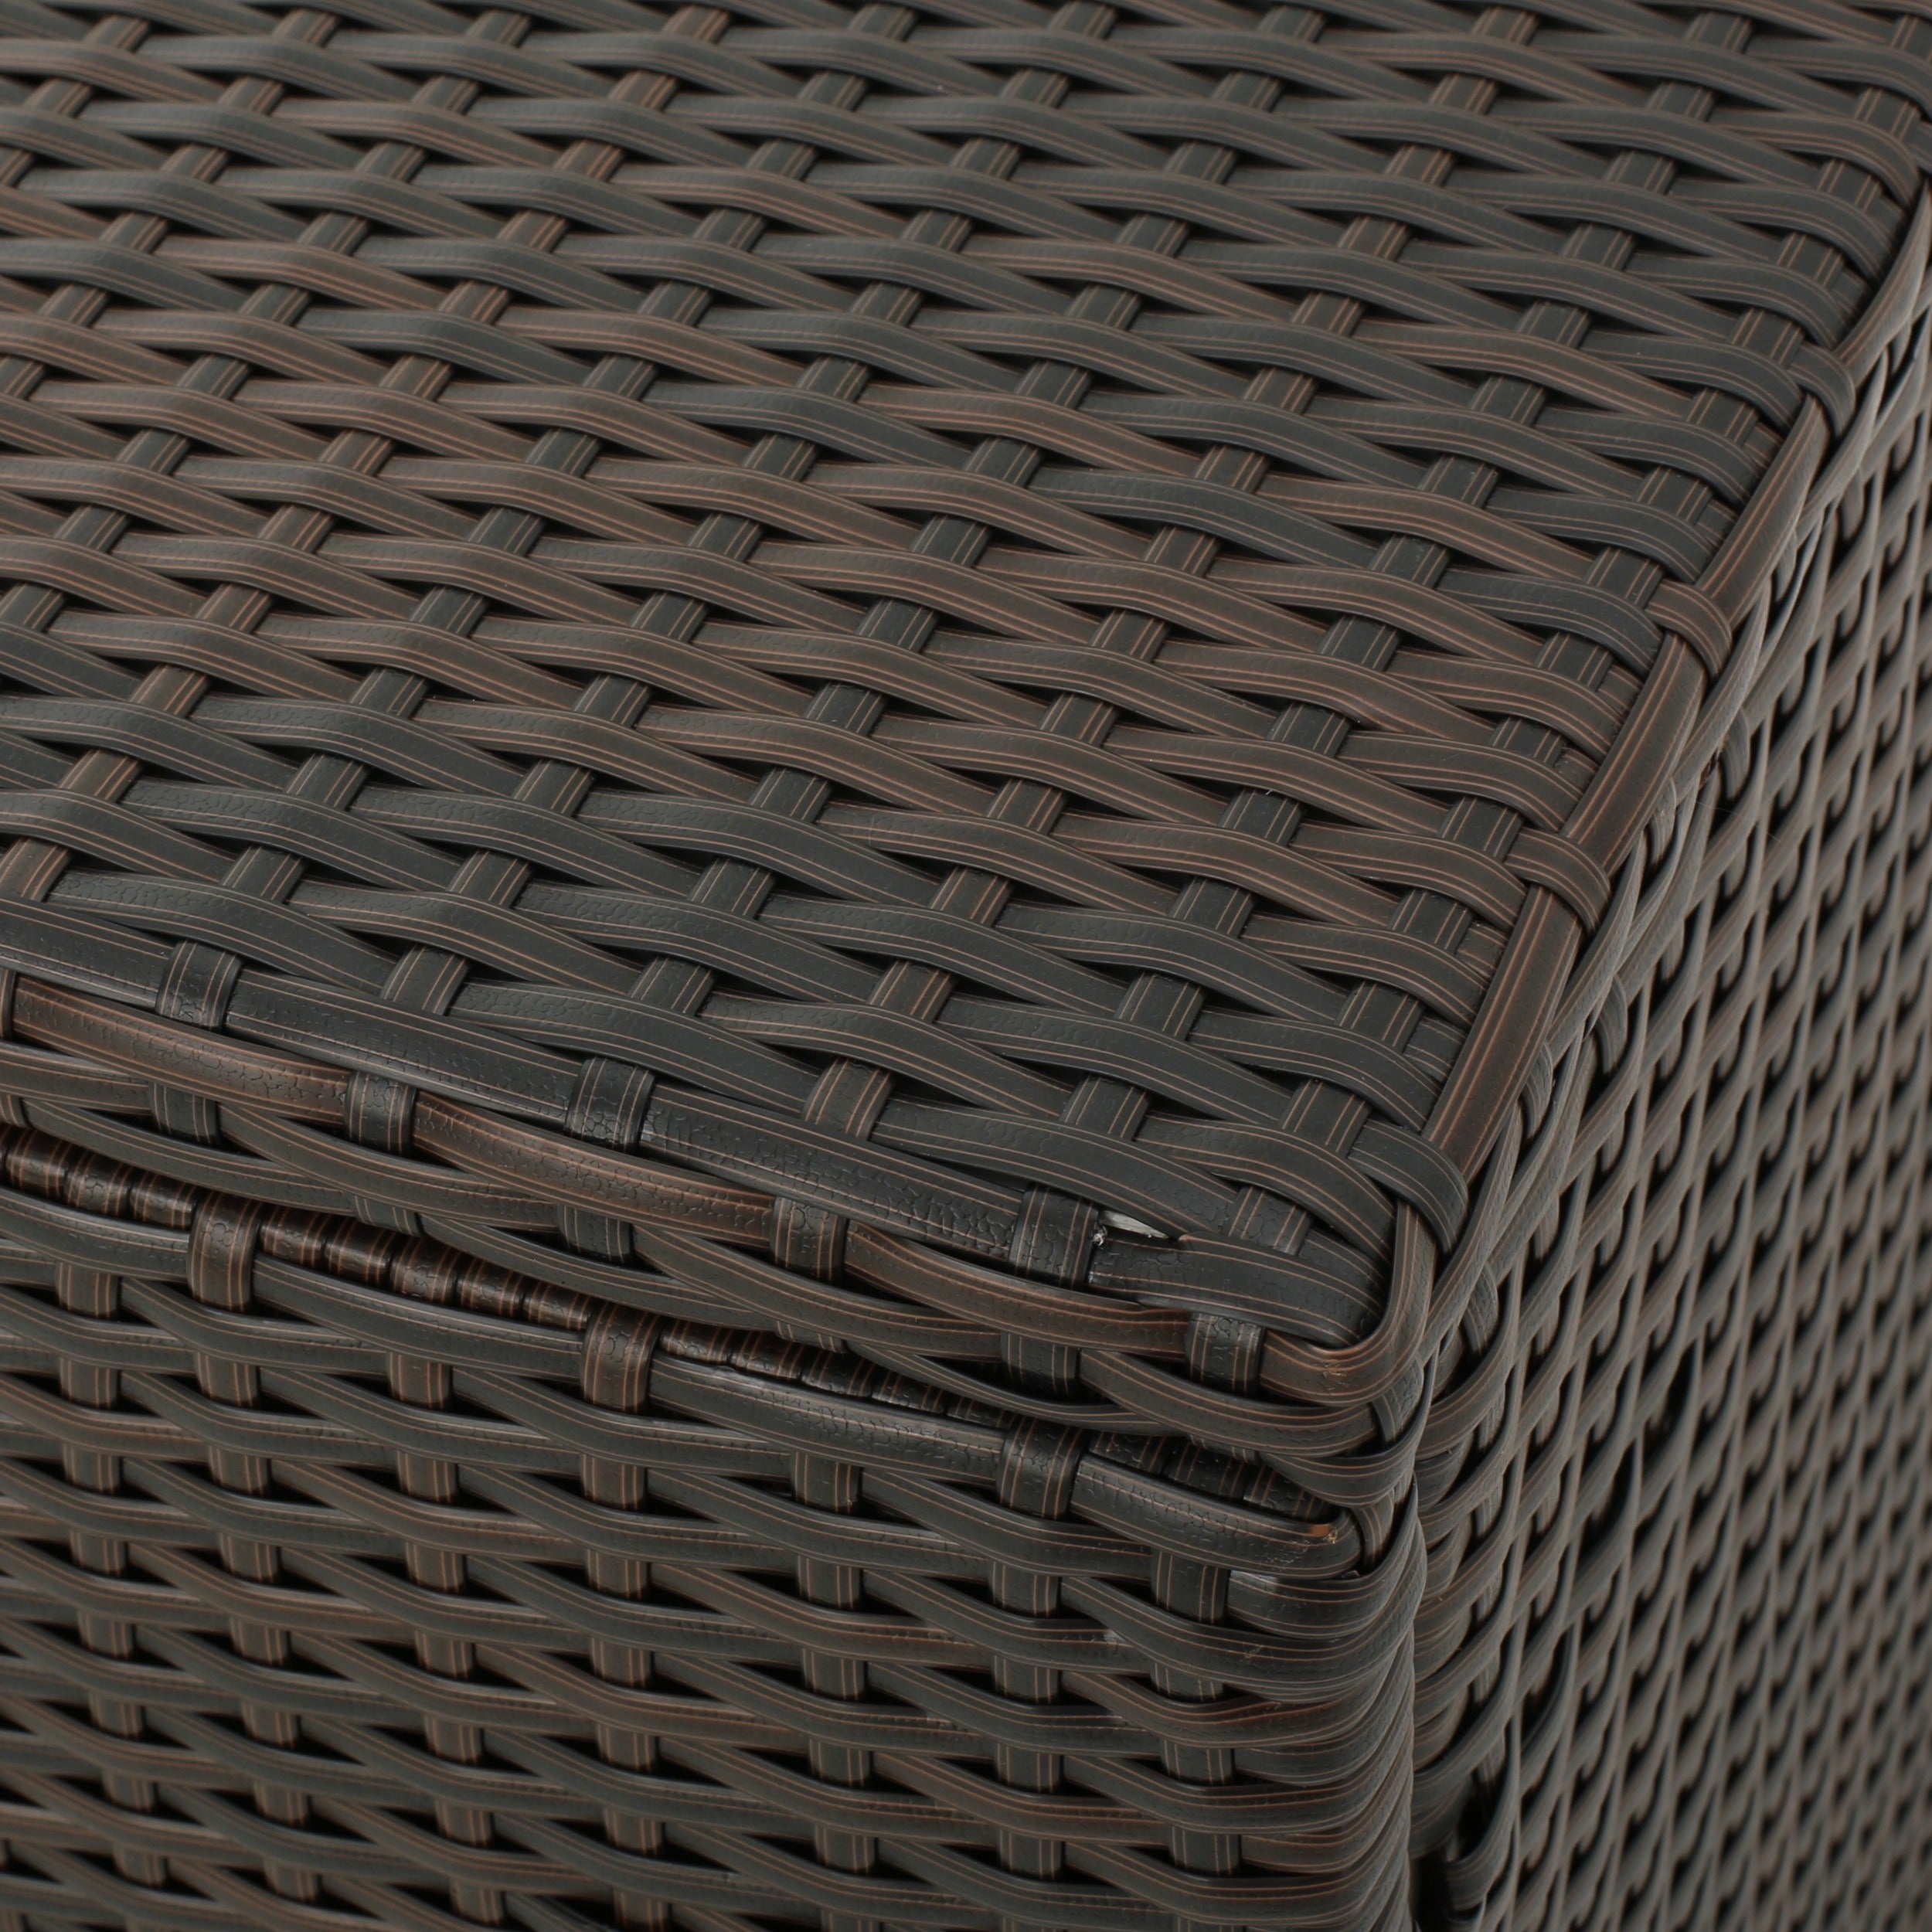 Shop Santa Rosa Outdoor Wicker Storage Box by Christopher Knight Home - Free Shipping Today - Overstock.com - 13165181 & Shop Santa Rosa Outdoor Wicker Storage Box by Christopher Knight ...